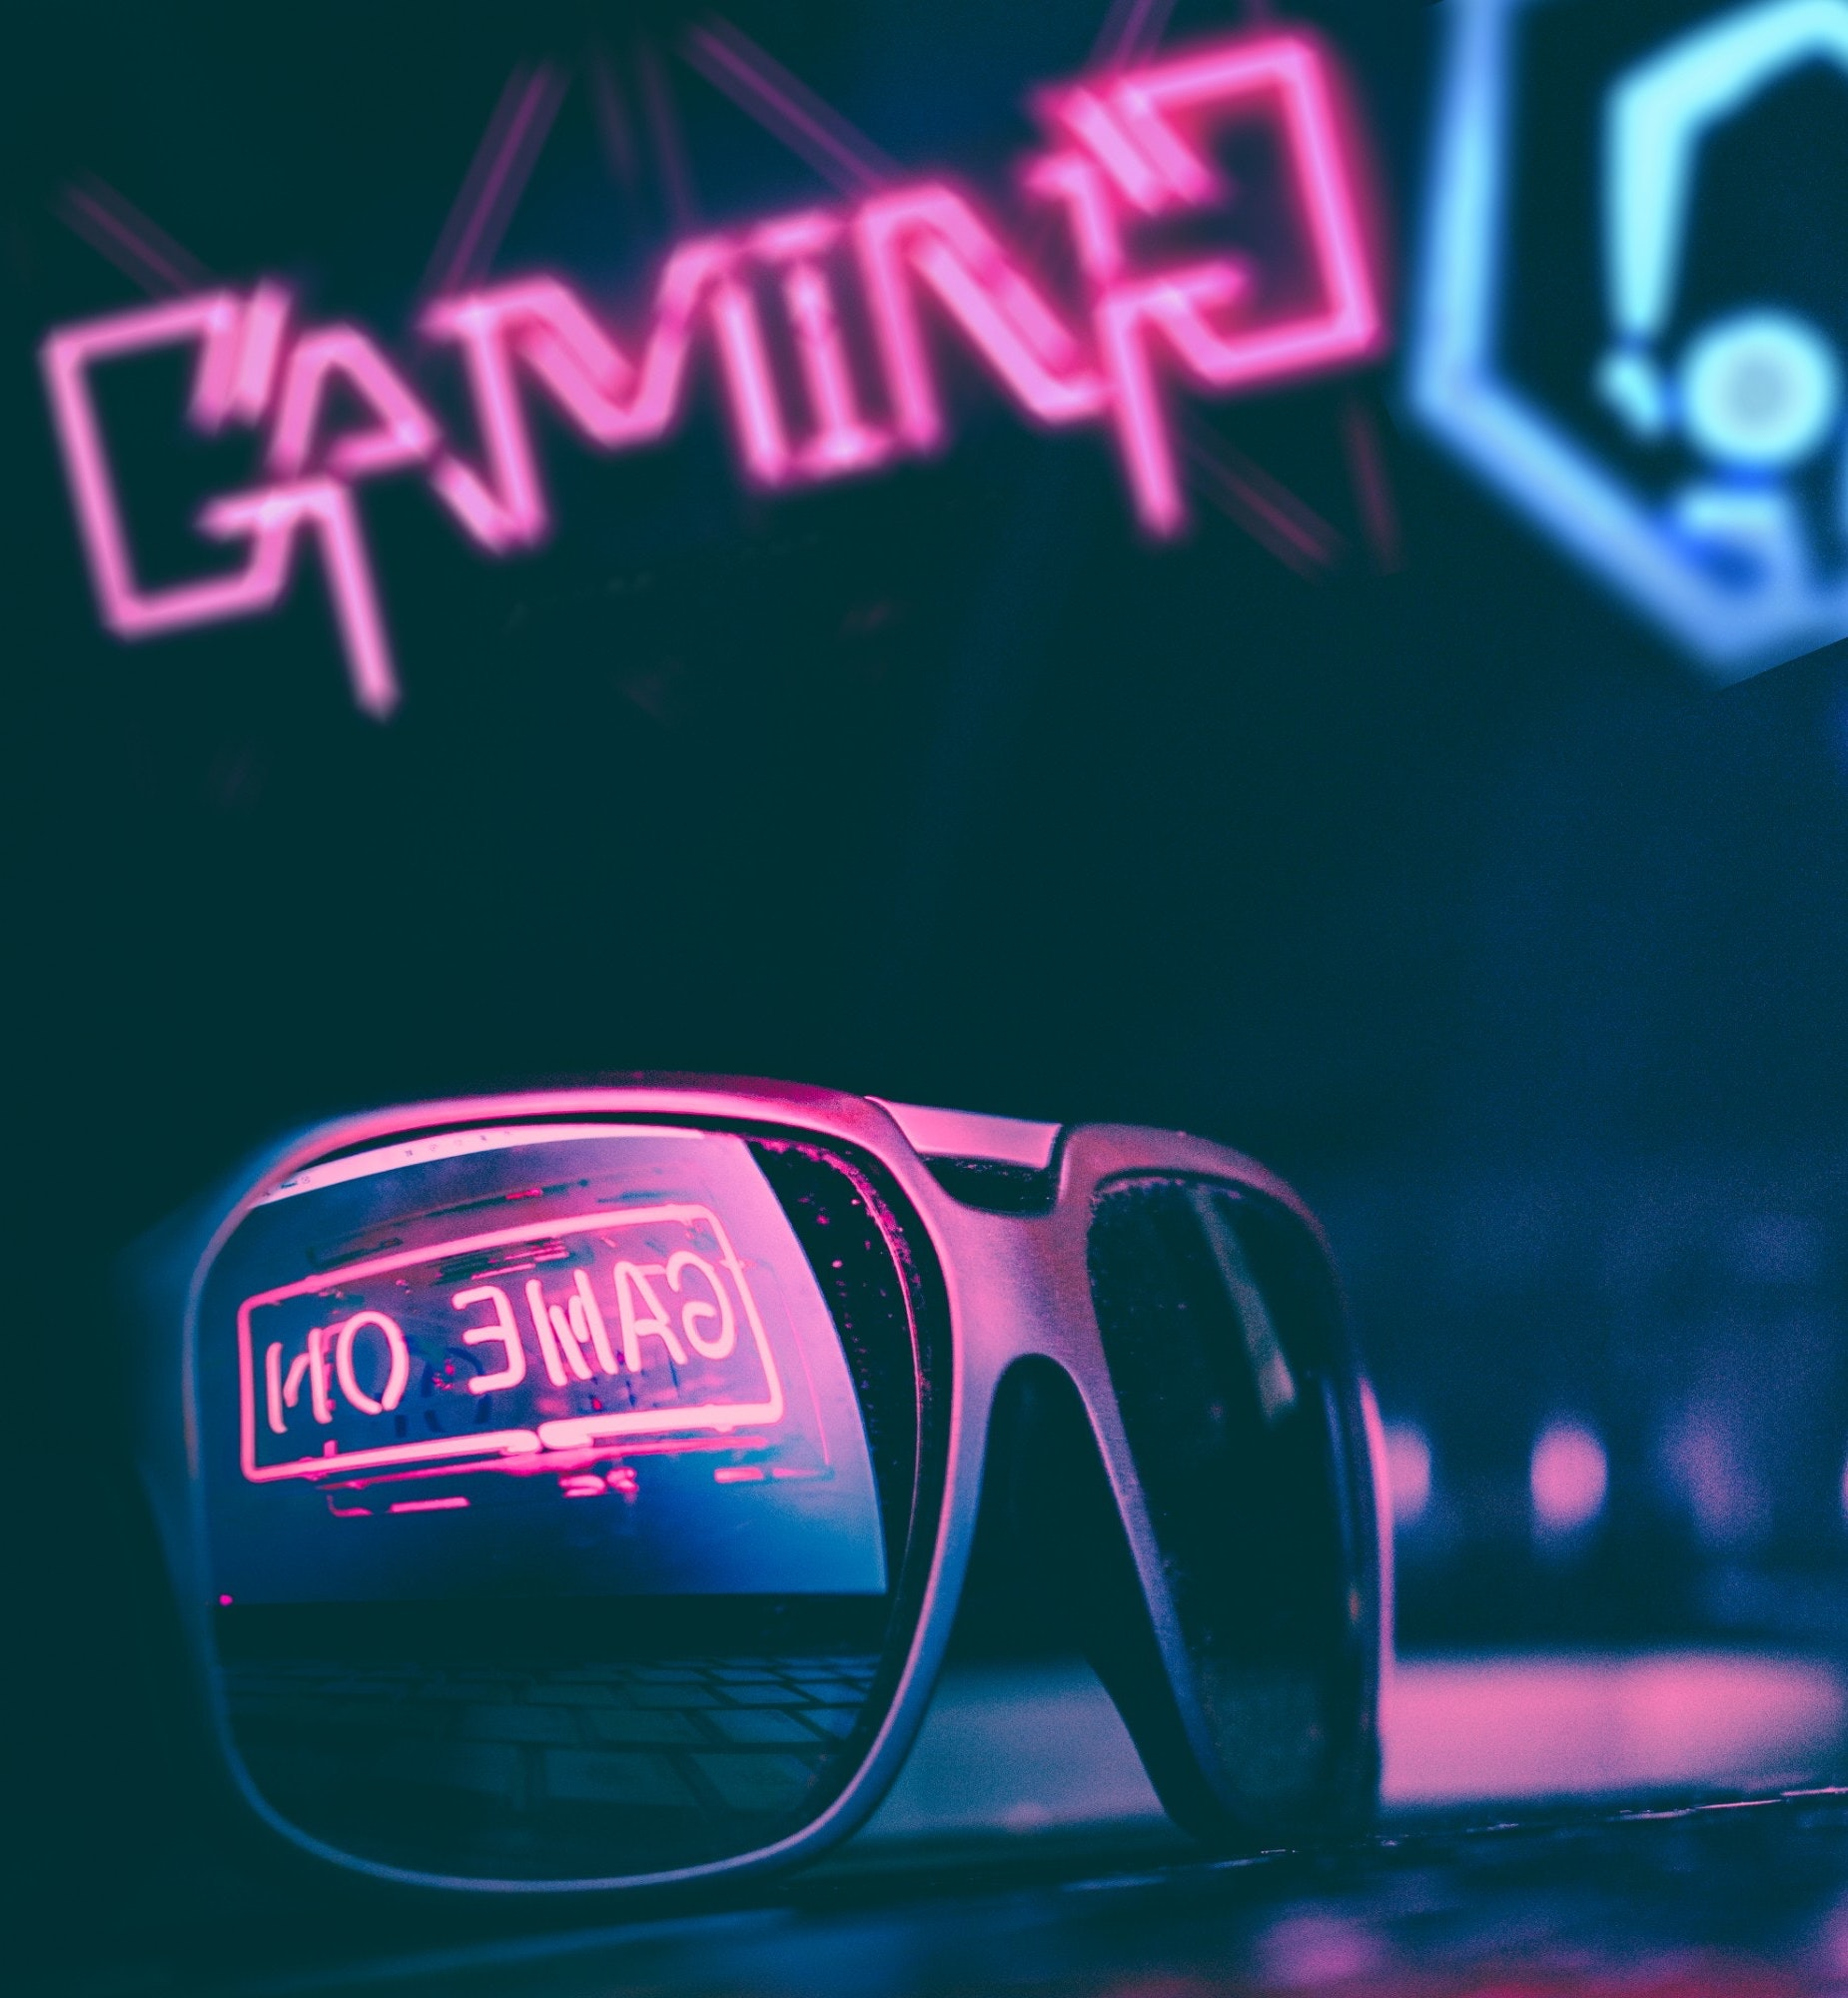 Trendy sunglasses reflecting neon light sign in dark room